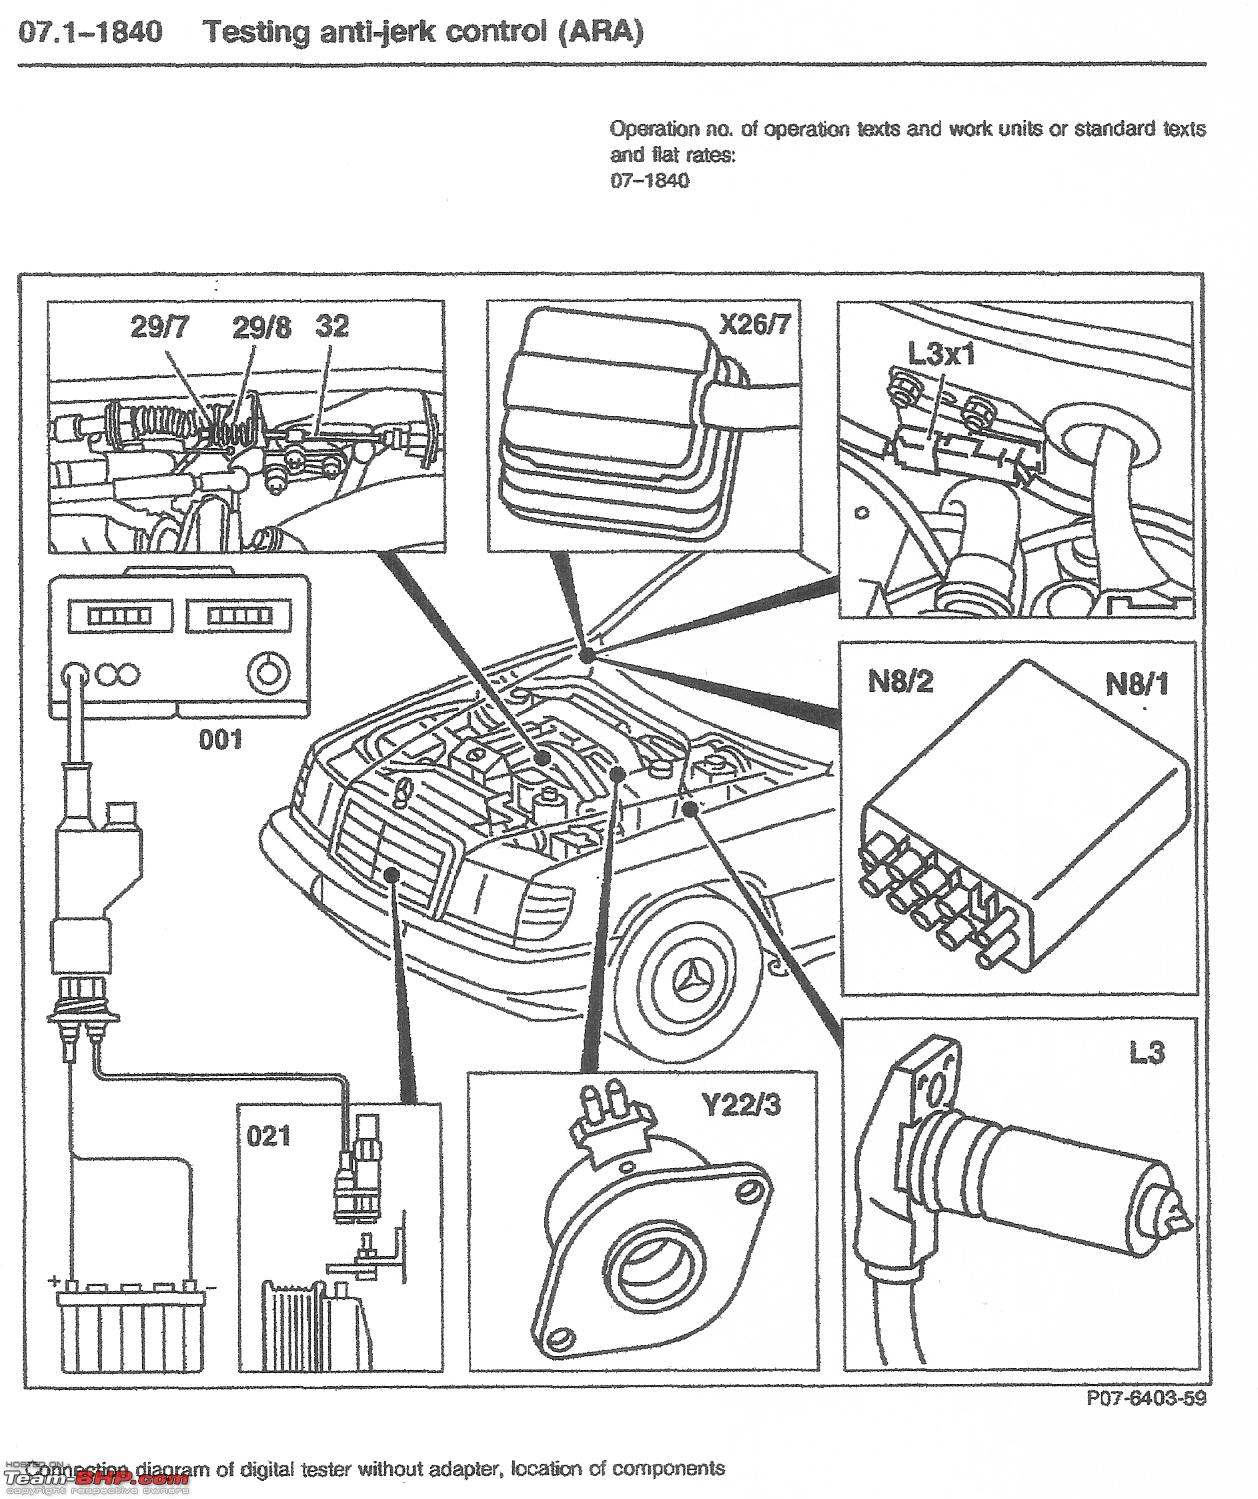 2002 Toyota Tundra Stereo Wiring Harness in addition 1986 Mercedes 420sel Engine Diagram as well R129 Fuse Box Location furthermore 486278 W211 Fuses Relays Sam Modules Chart as well Mercedes Wiring Diagrams. on mercedes w124 fuse box diagram